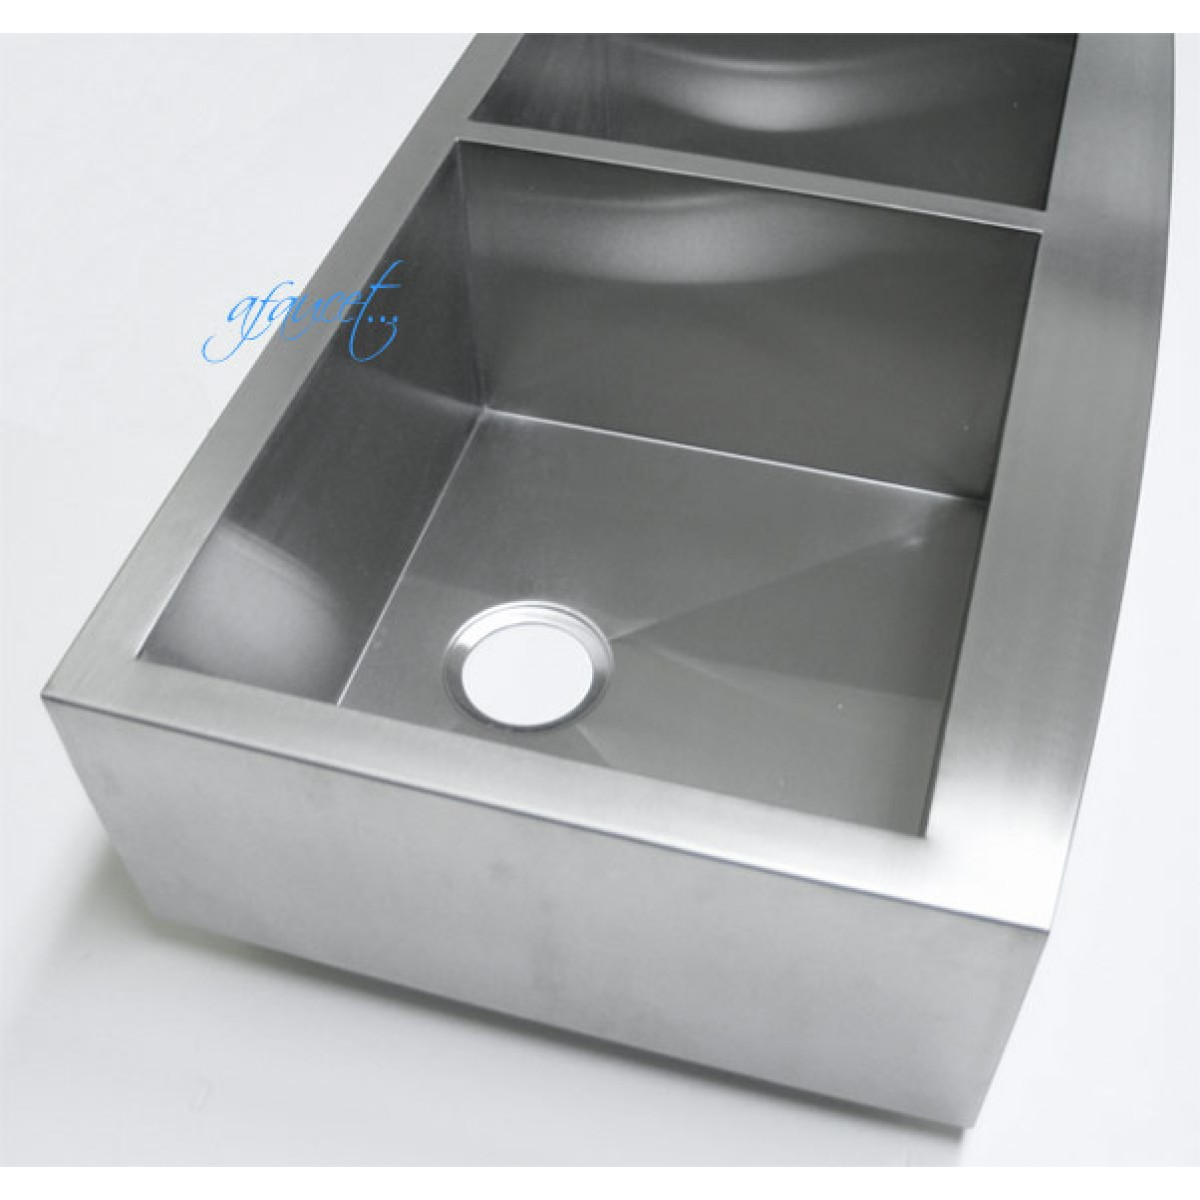 kitchen sink bottom grid faucet pull out sprayer 36 inch stainless steel curved front farm apron 40/60 ...